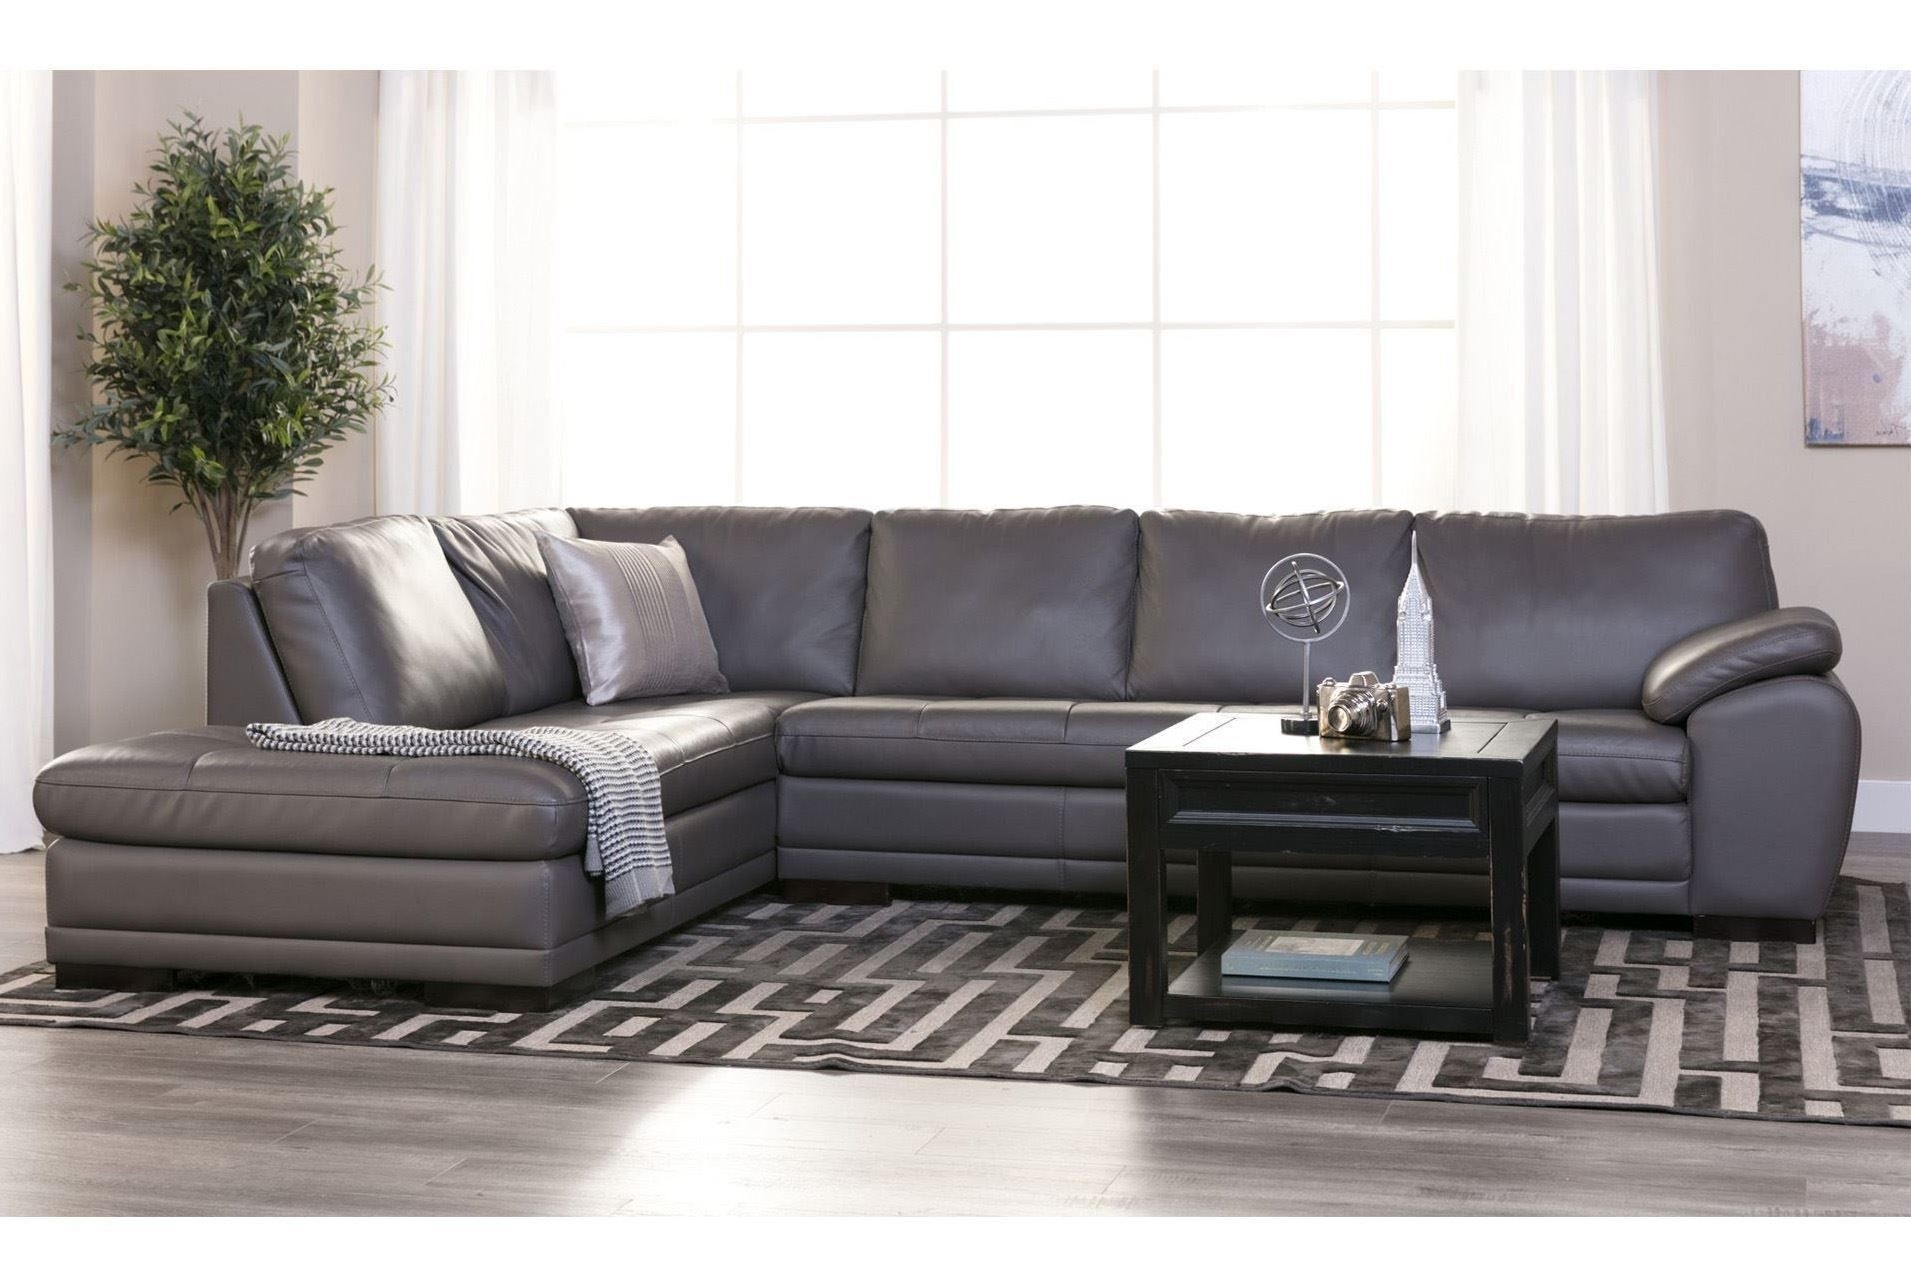 Living Spaces Leather Sectional Tatum Dark Grey 2 Piece W Raf Chaise Inside Tatum Dark Grey 2 Piece Sectionals With Raf Chaise (Image 14 of 25)